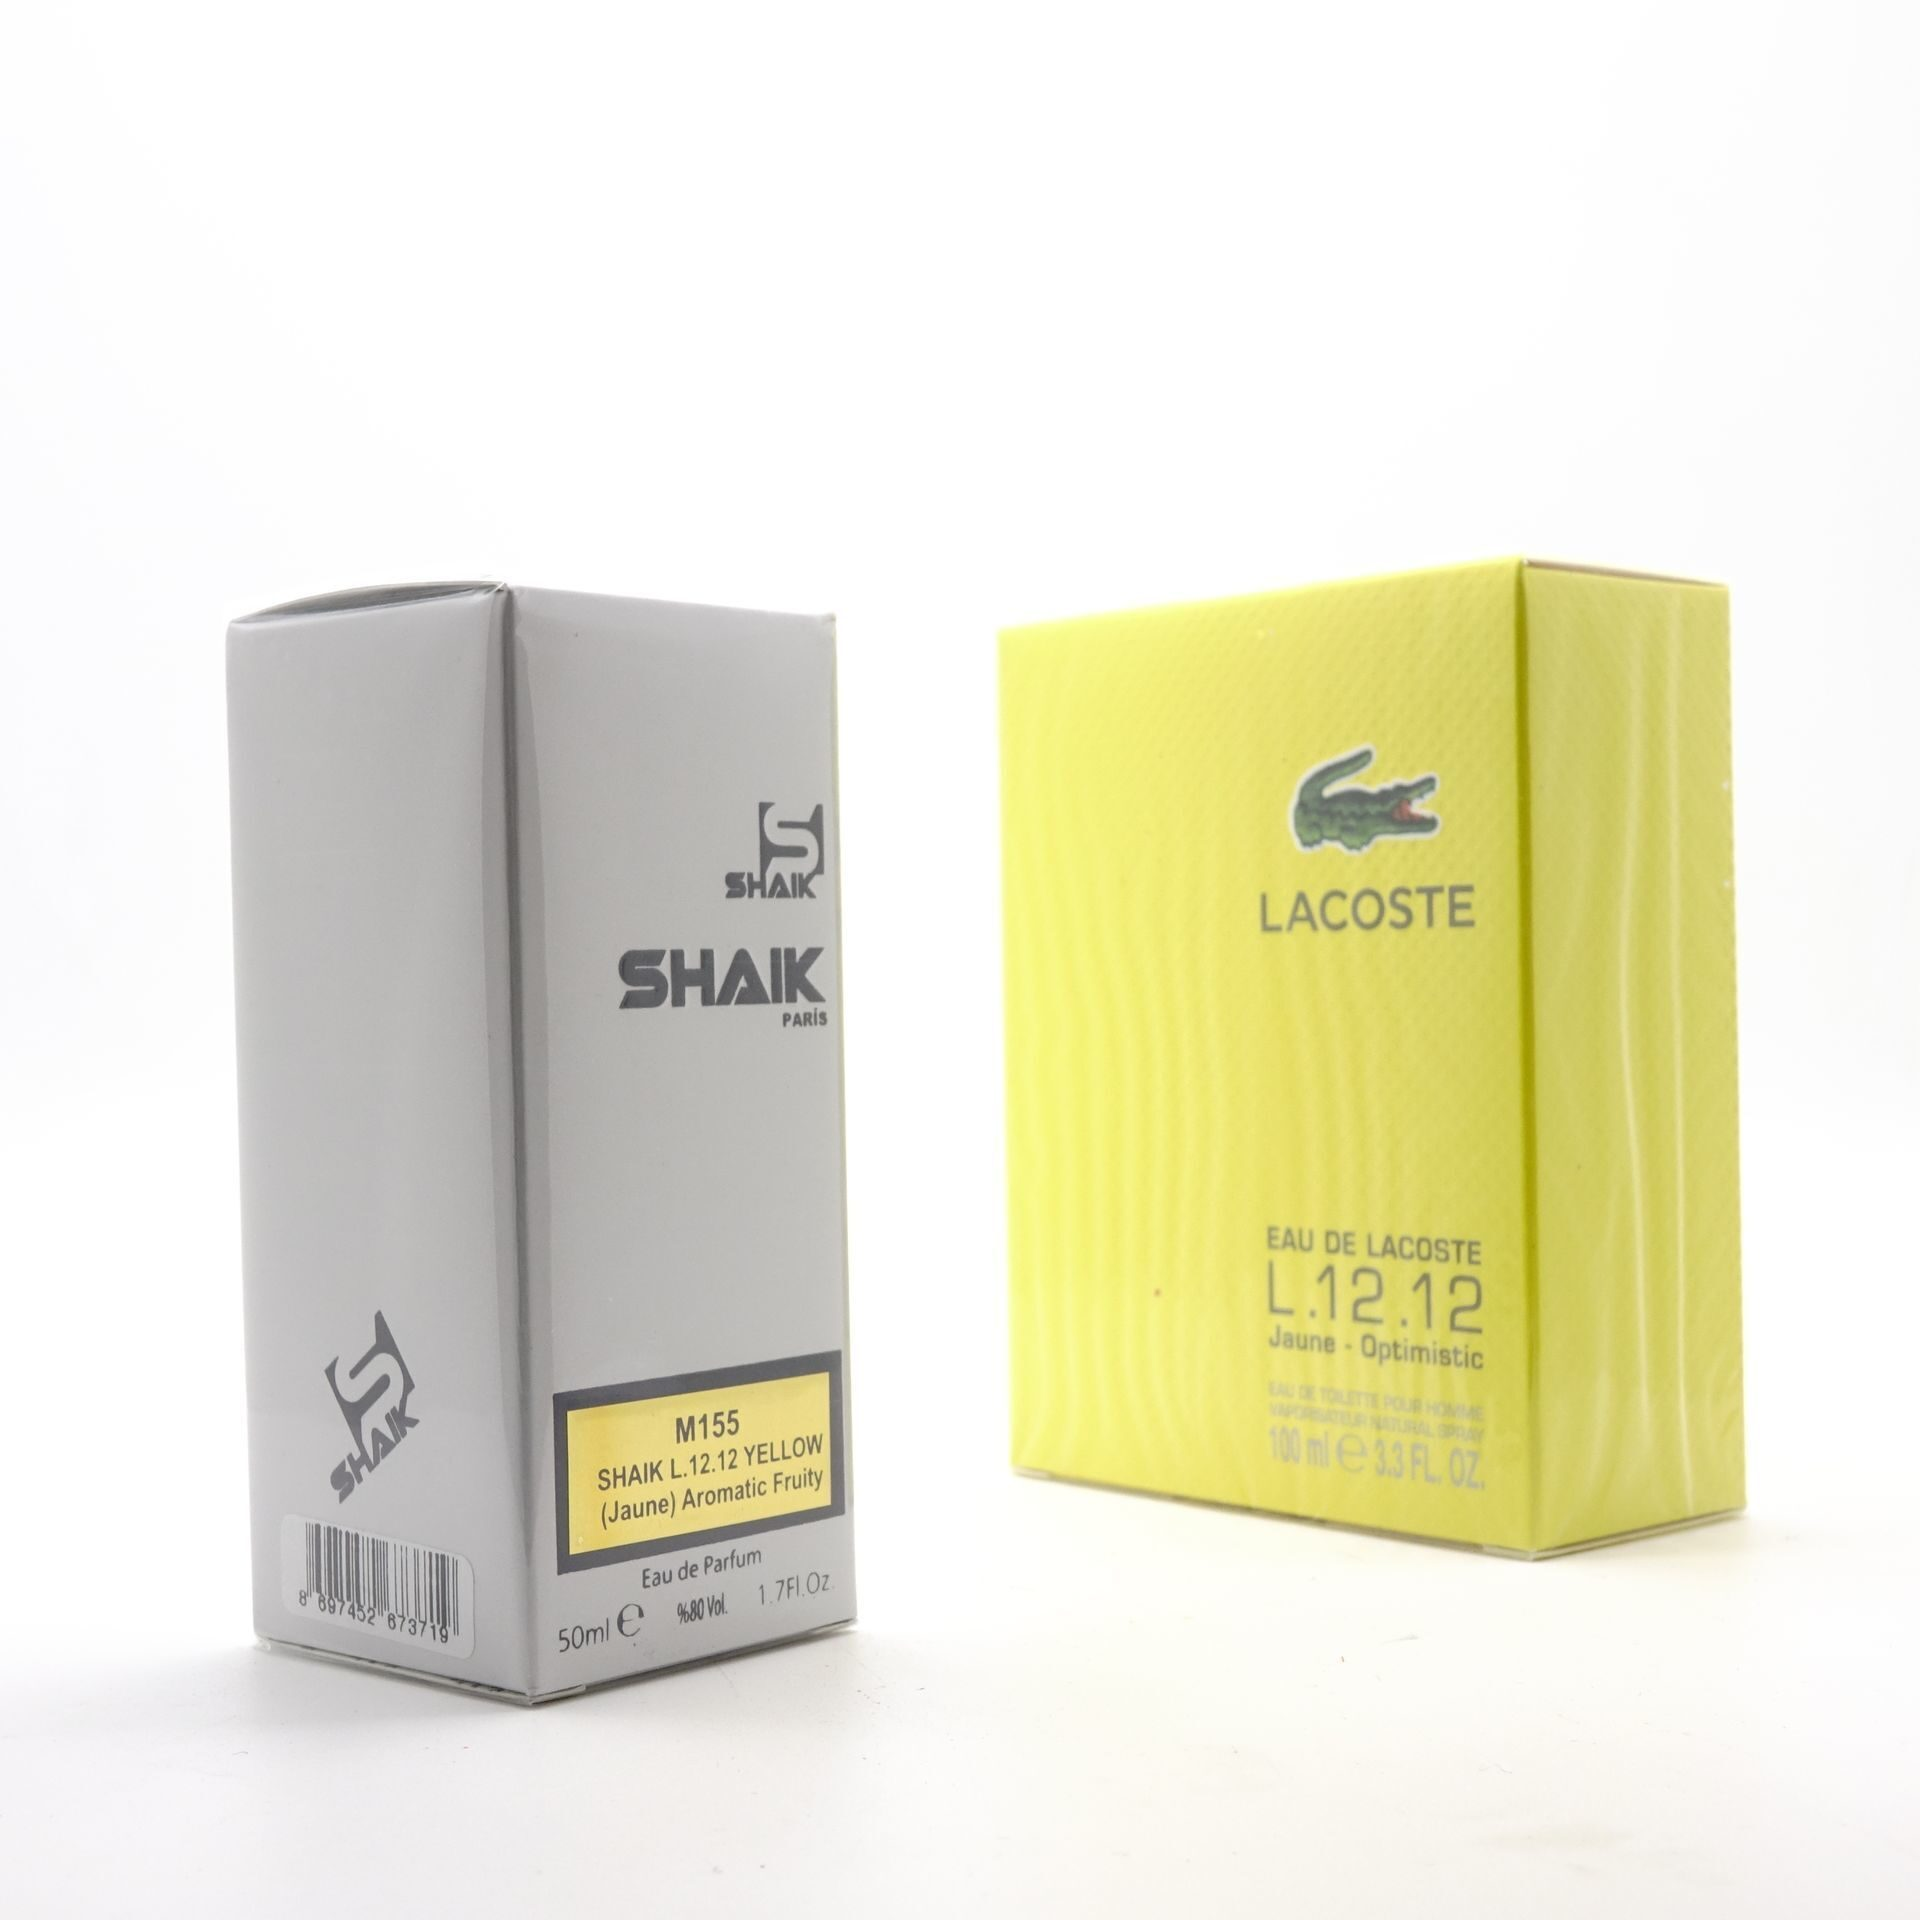 SHAIK M 155 (LACOSTE L.12.12 JAUNE-OPTIMISTIC FOR MEN) 50ml